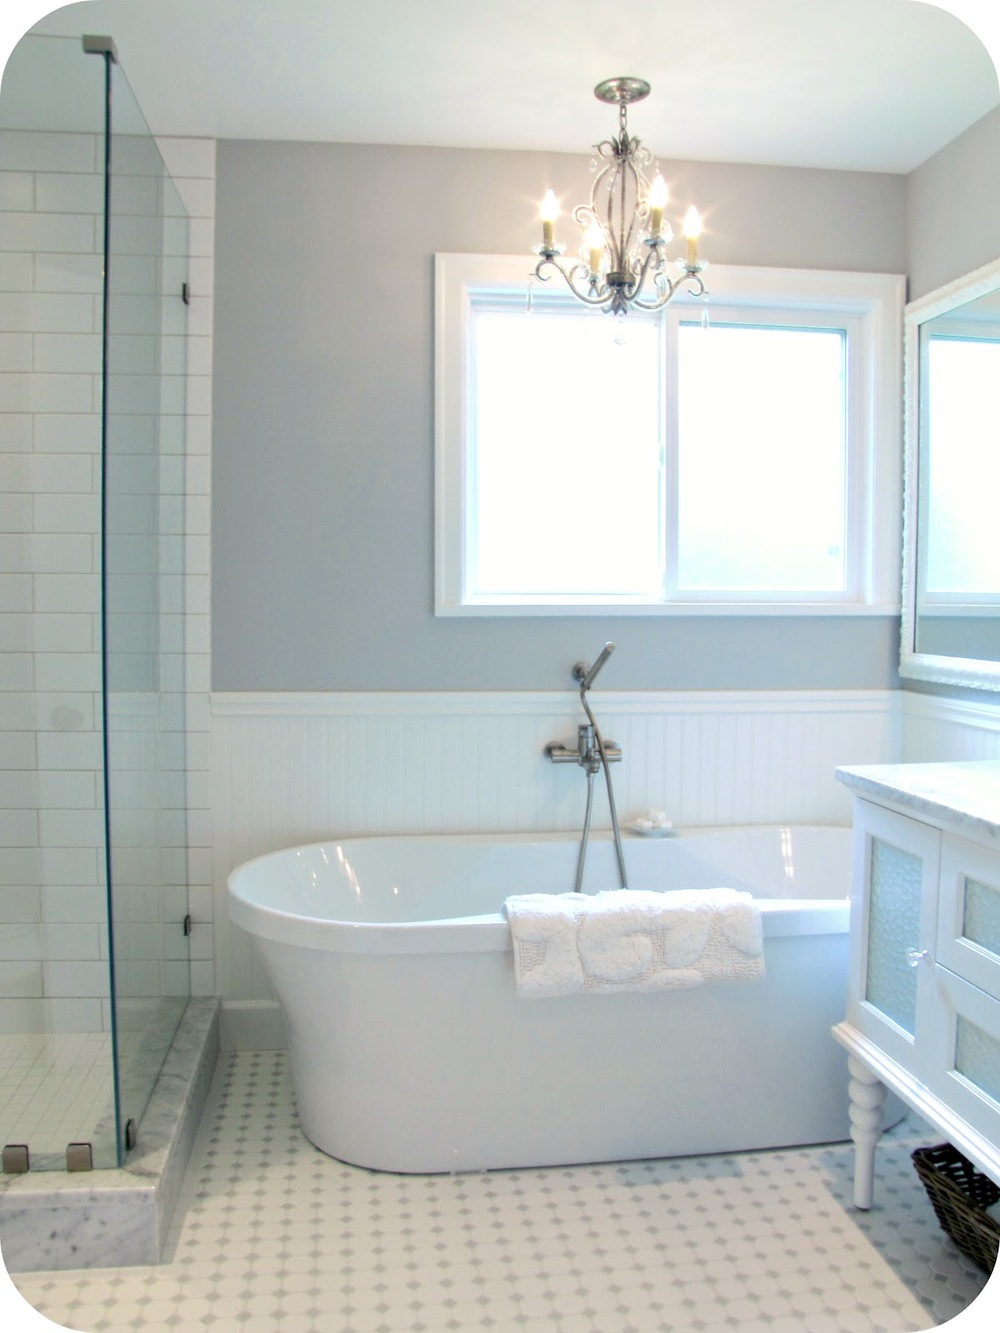 bathroom-fascinating-bathrooms-with-freestanding-tubs-with-black-iron-floating-pendant-lamp-and-white-ceramic-tile-floor-fancy-bathrooms-with-freestanding-tubs.jpg